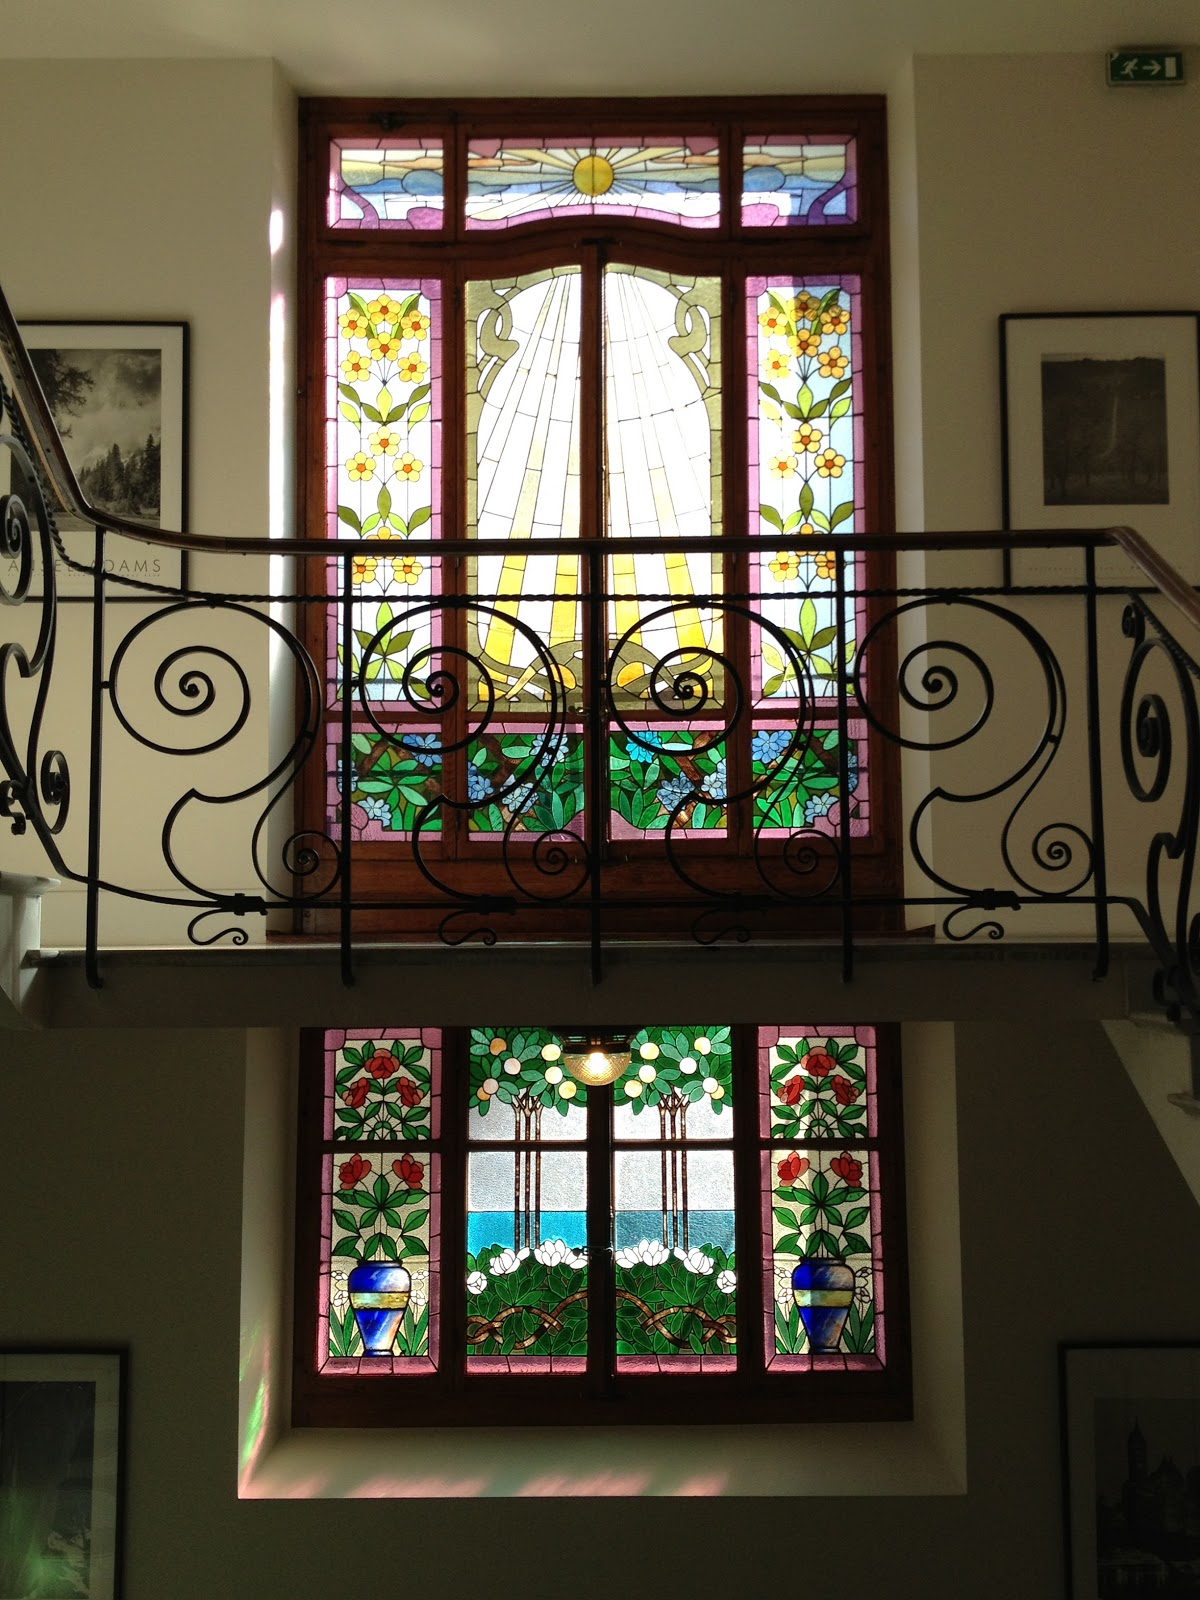 Where beechmast falls art nouveau stained glass in a for Art glass windows